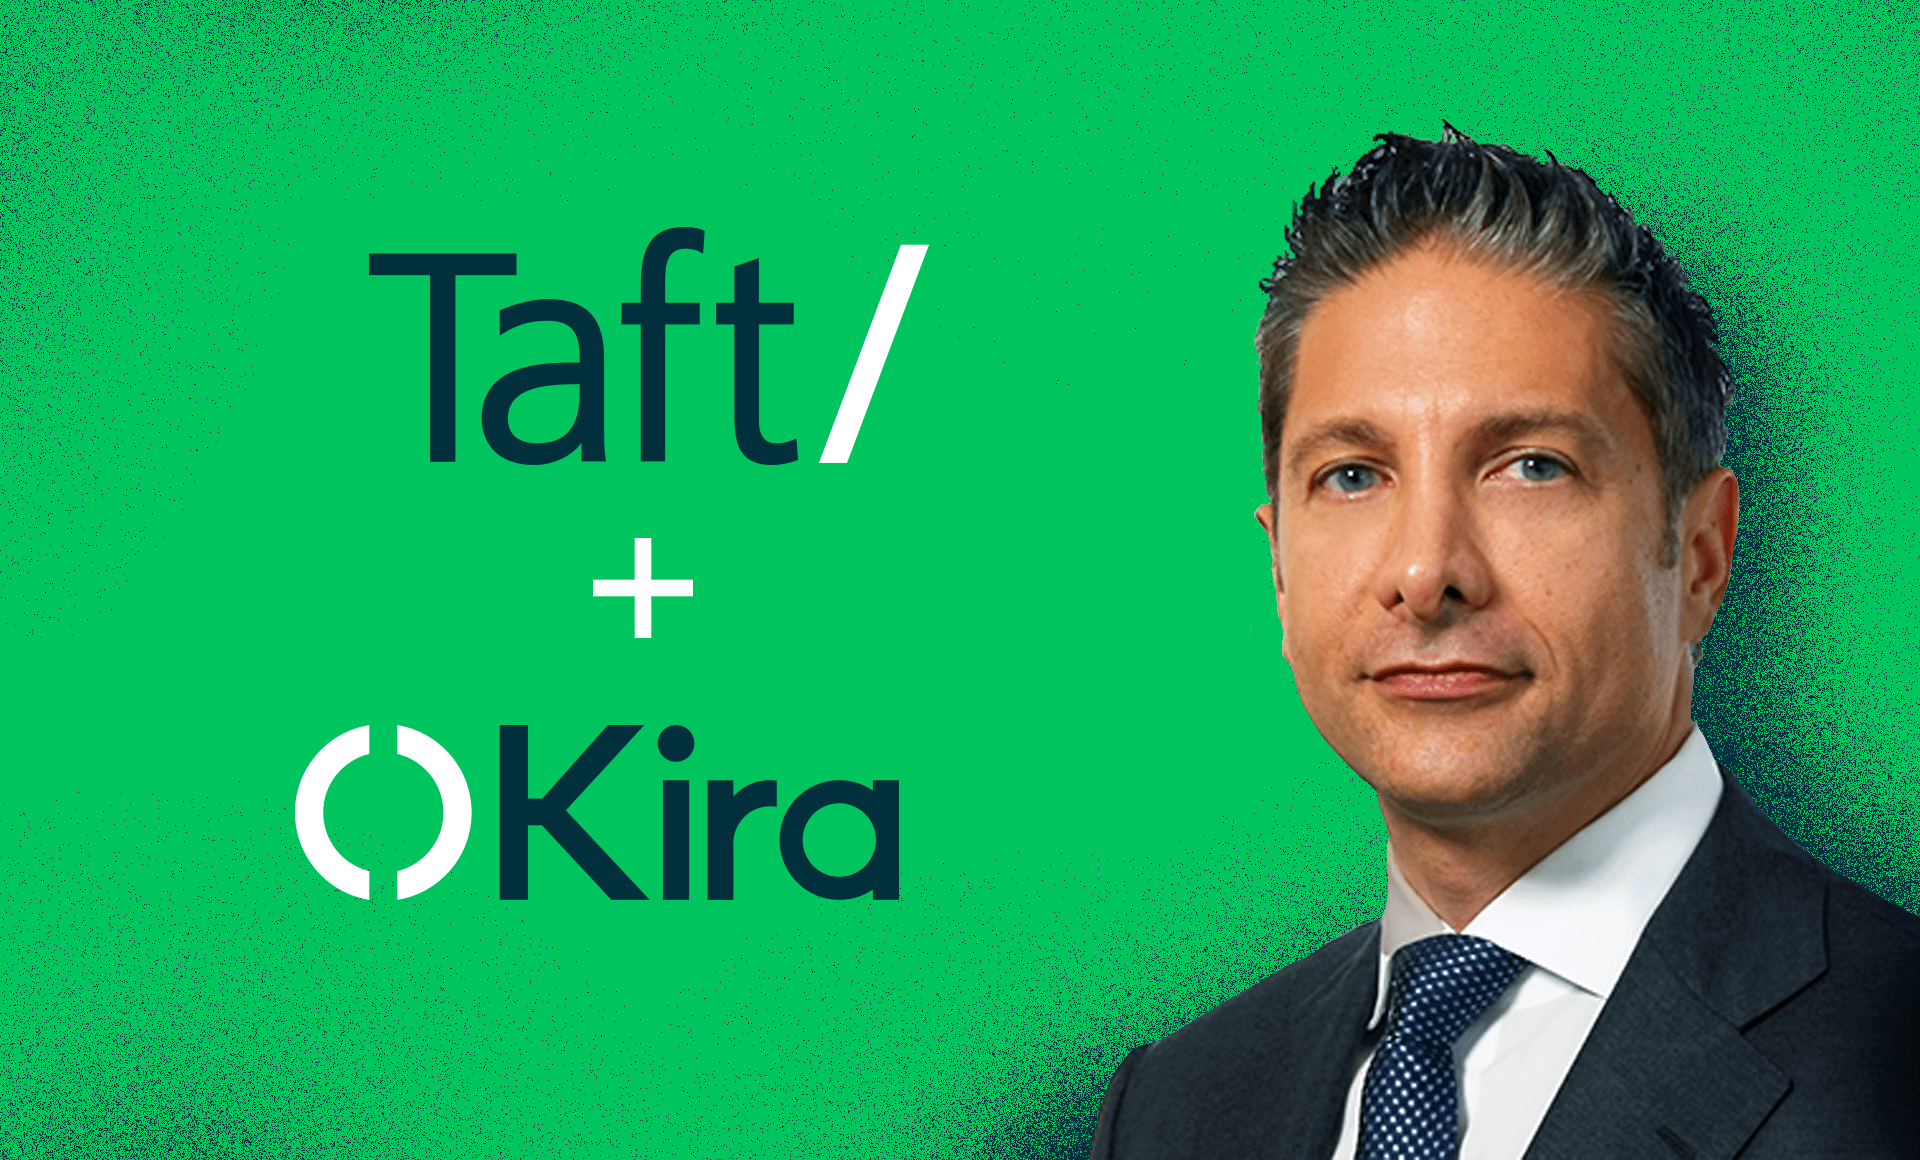 Read more about Taft Stettinius & Hollister LLP Adopts Kira Across its Mergers and Acquisitions Practice to Enhance Due Diligence Processes